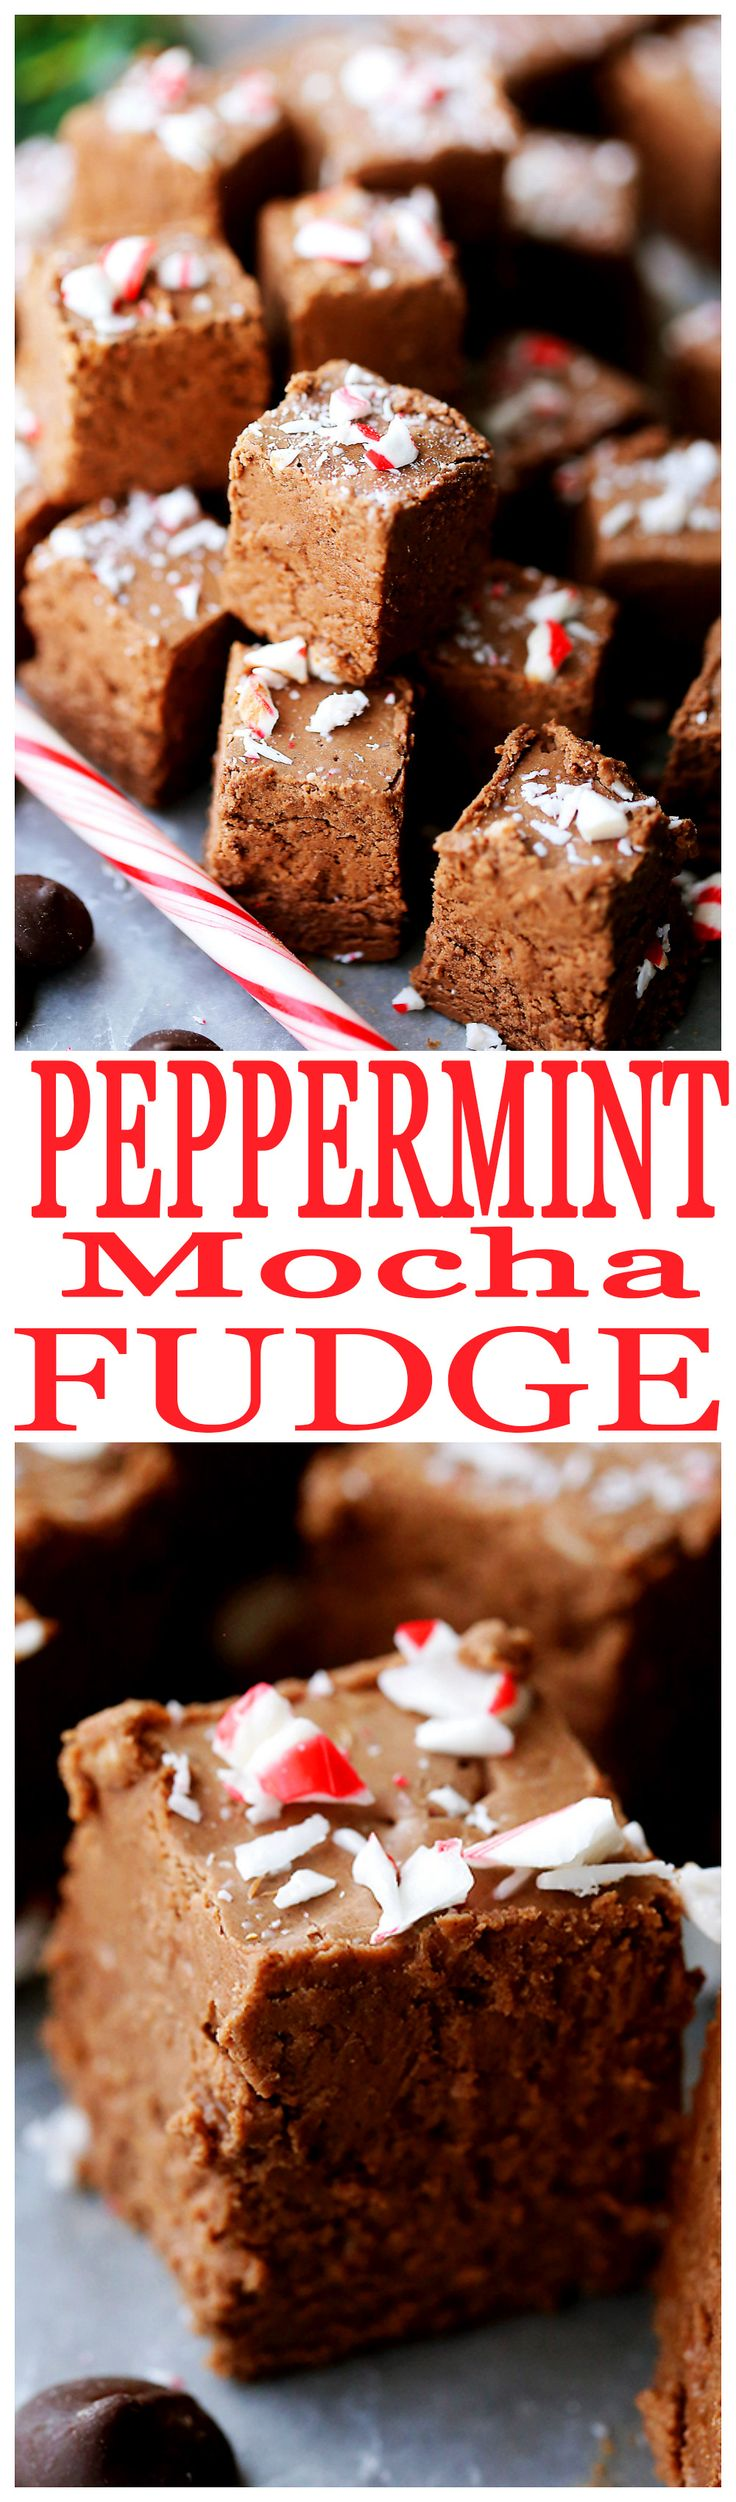 Peppermint Mocha Fudge Recipe - Chocolaty, chewy, sweet and minty Fudge perfect for the Holiday Season, and an ideal treat for gifting!